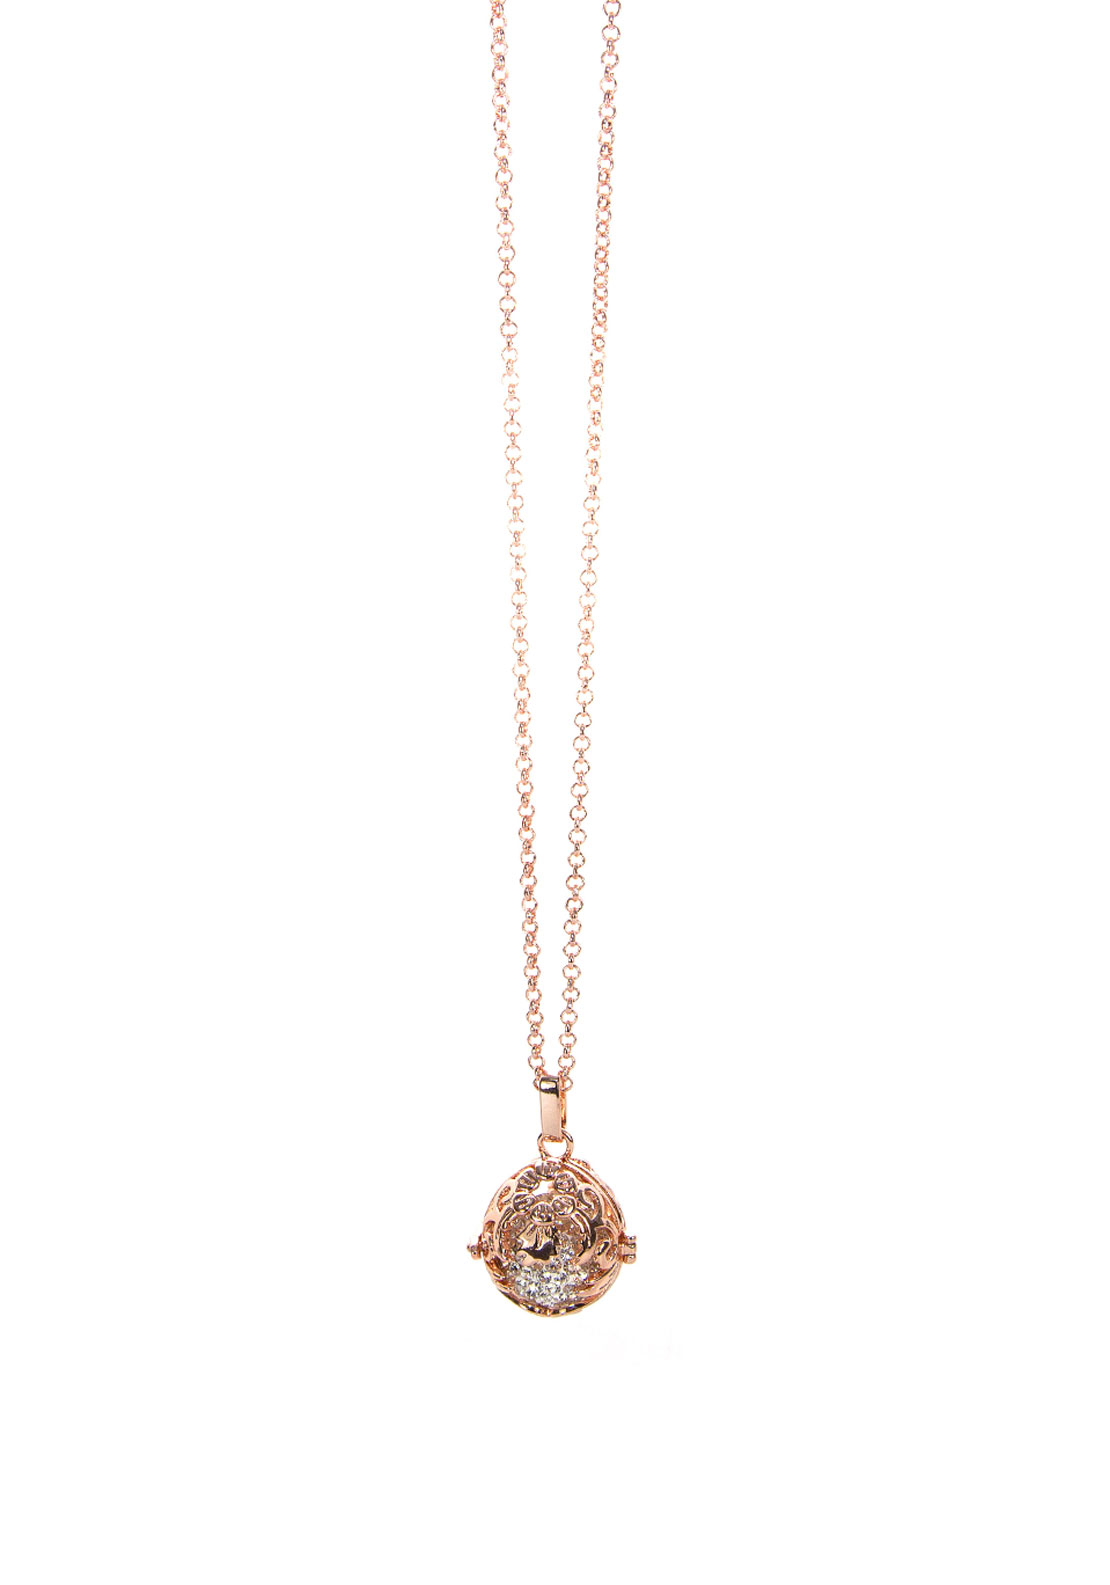 Absolute Jewellery Pave Locket Long Necklace